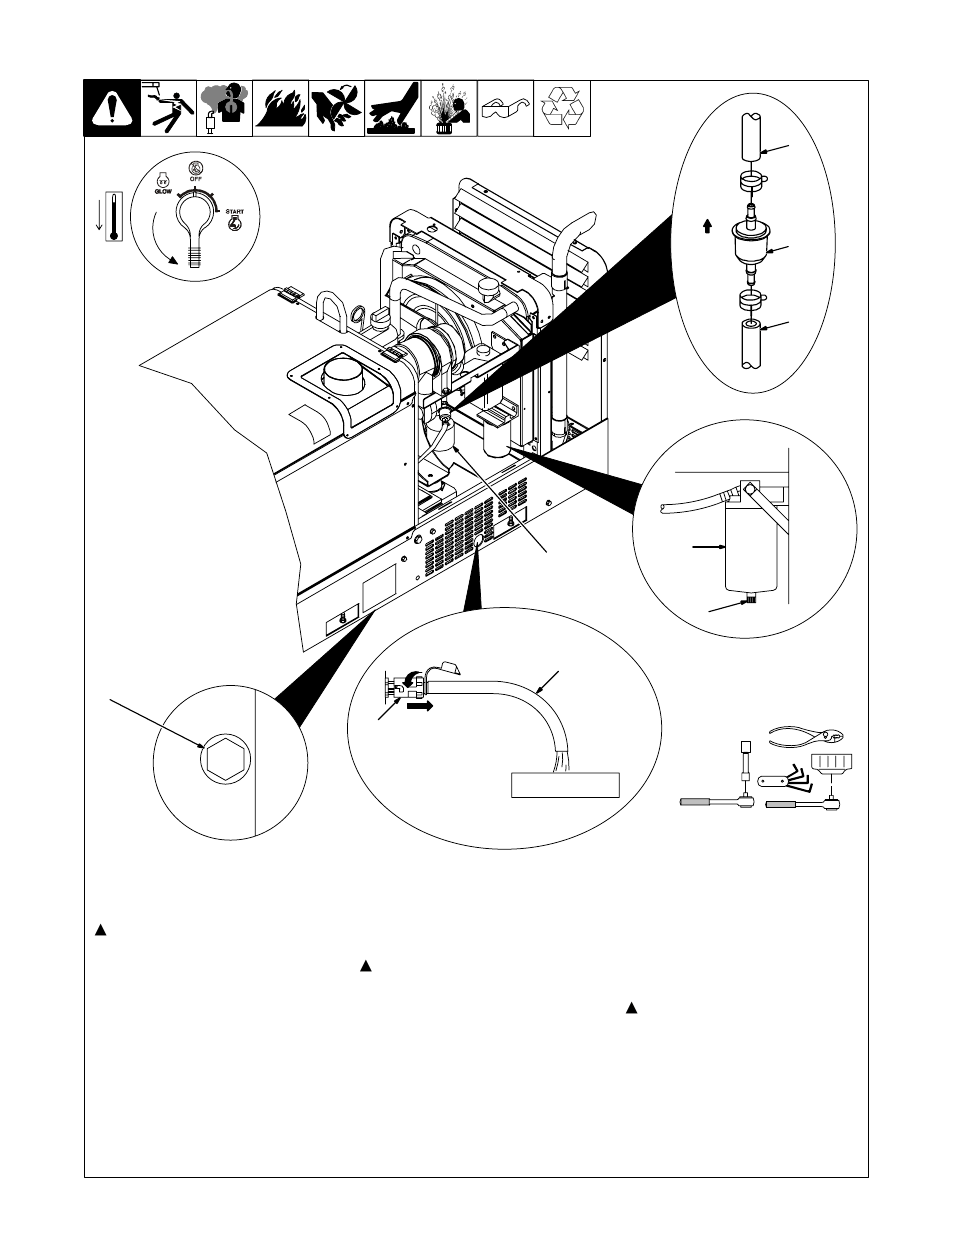 hight resolution of 5 servicing engine lubrication and fuel systems miller electric trailblazer pro 350 user manual page 33 68